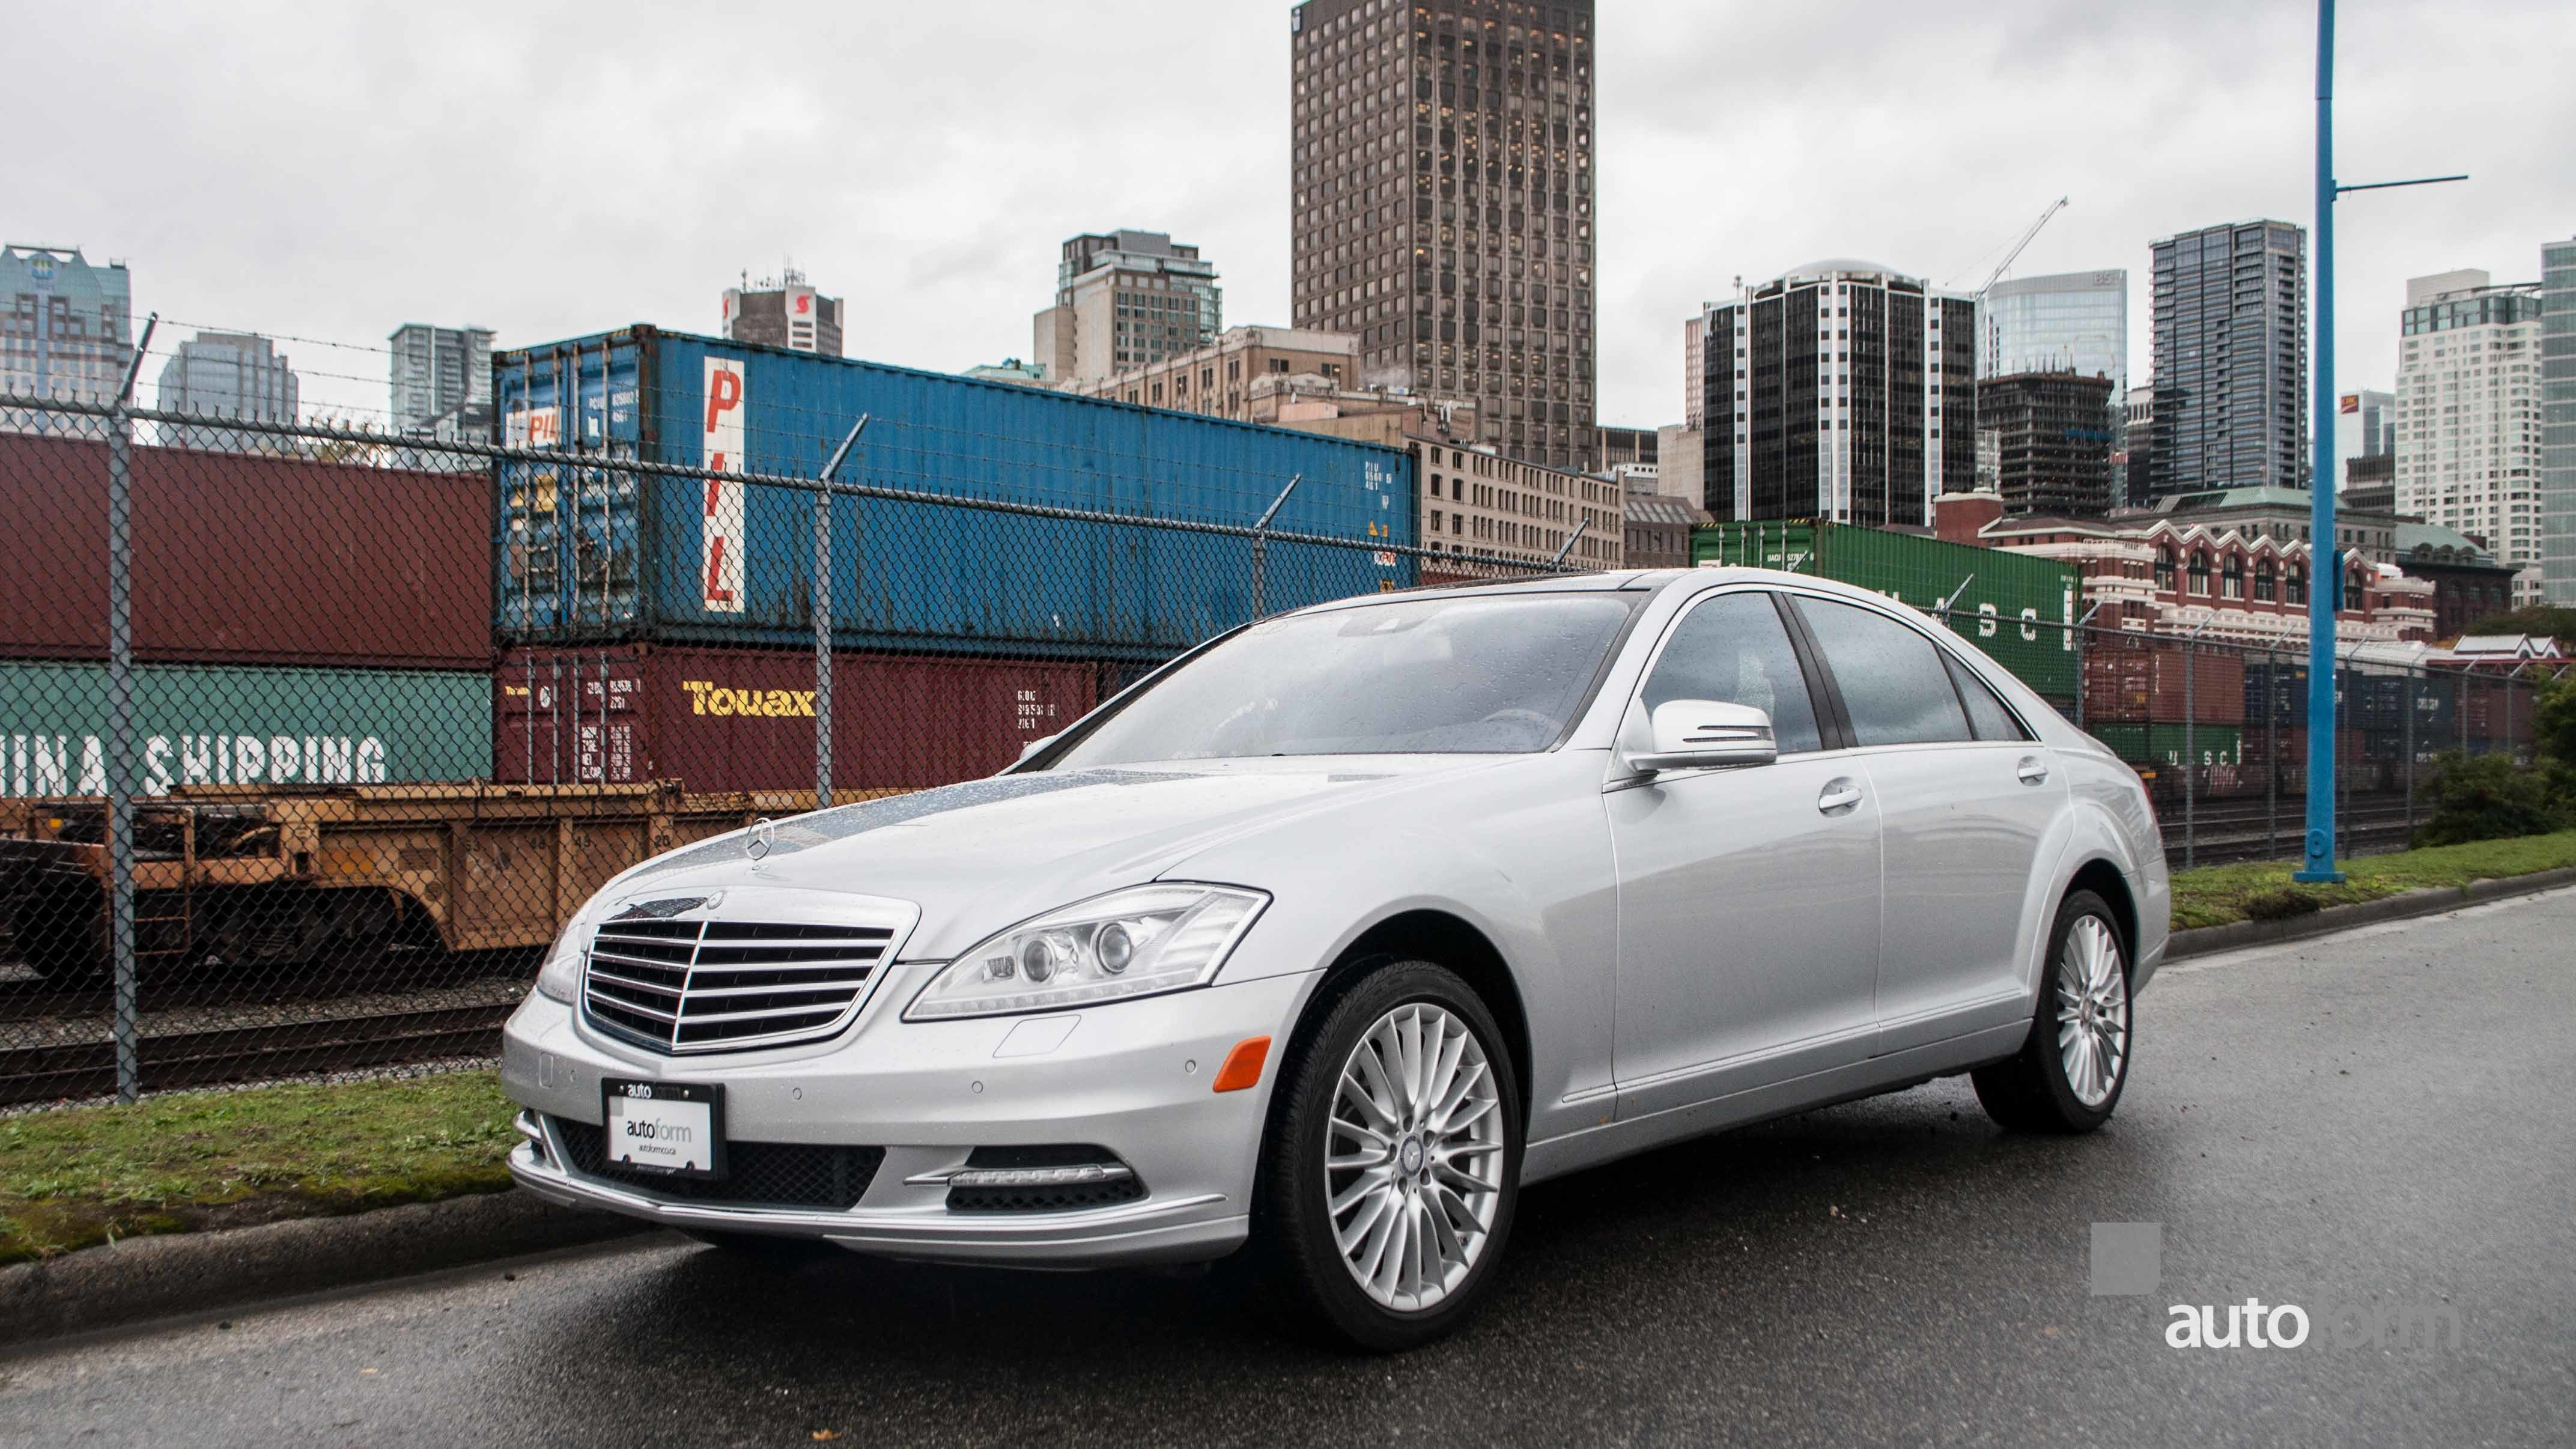 atlanta benz limo rental in sedan luxury mercedes atlantic